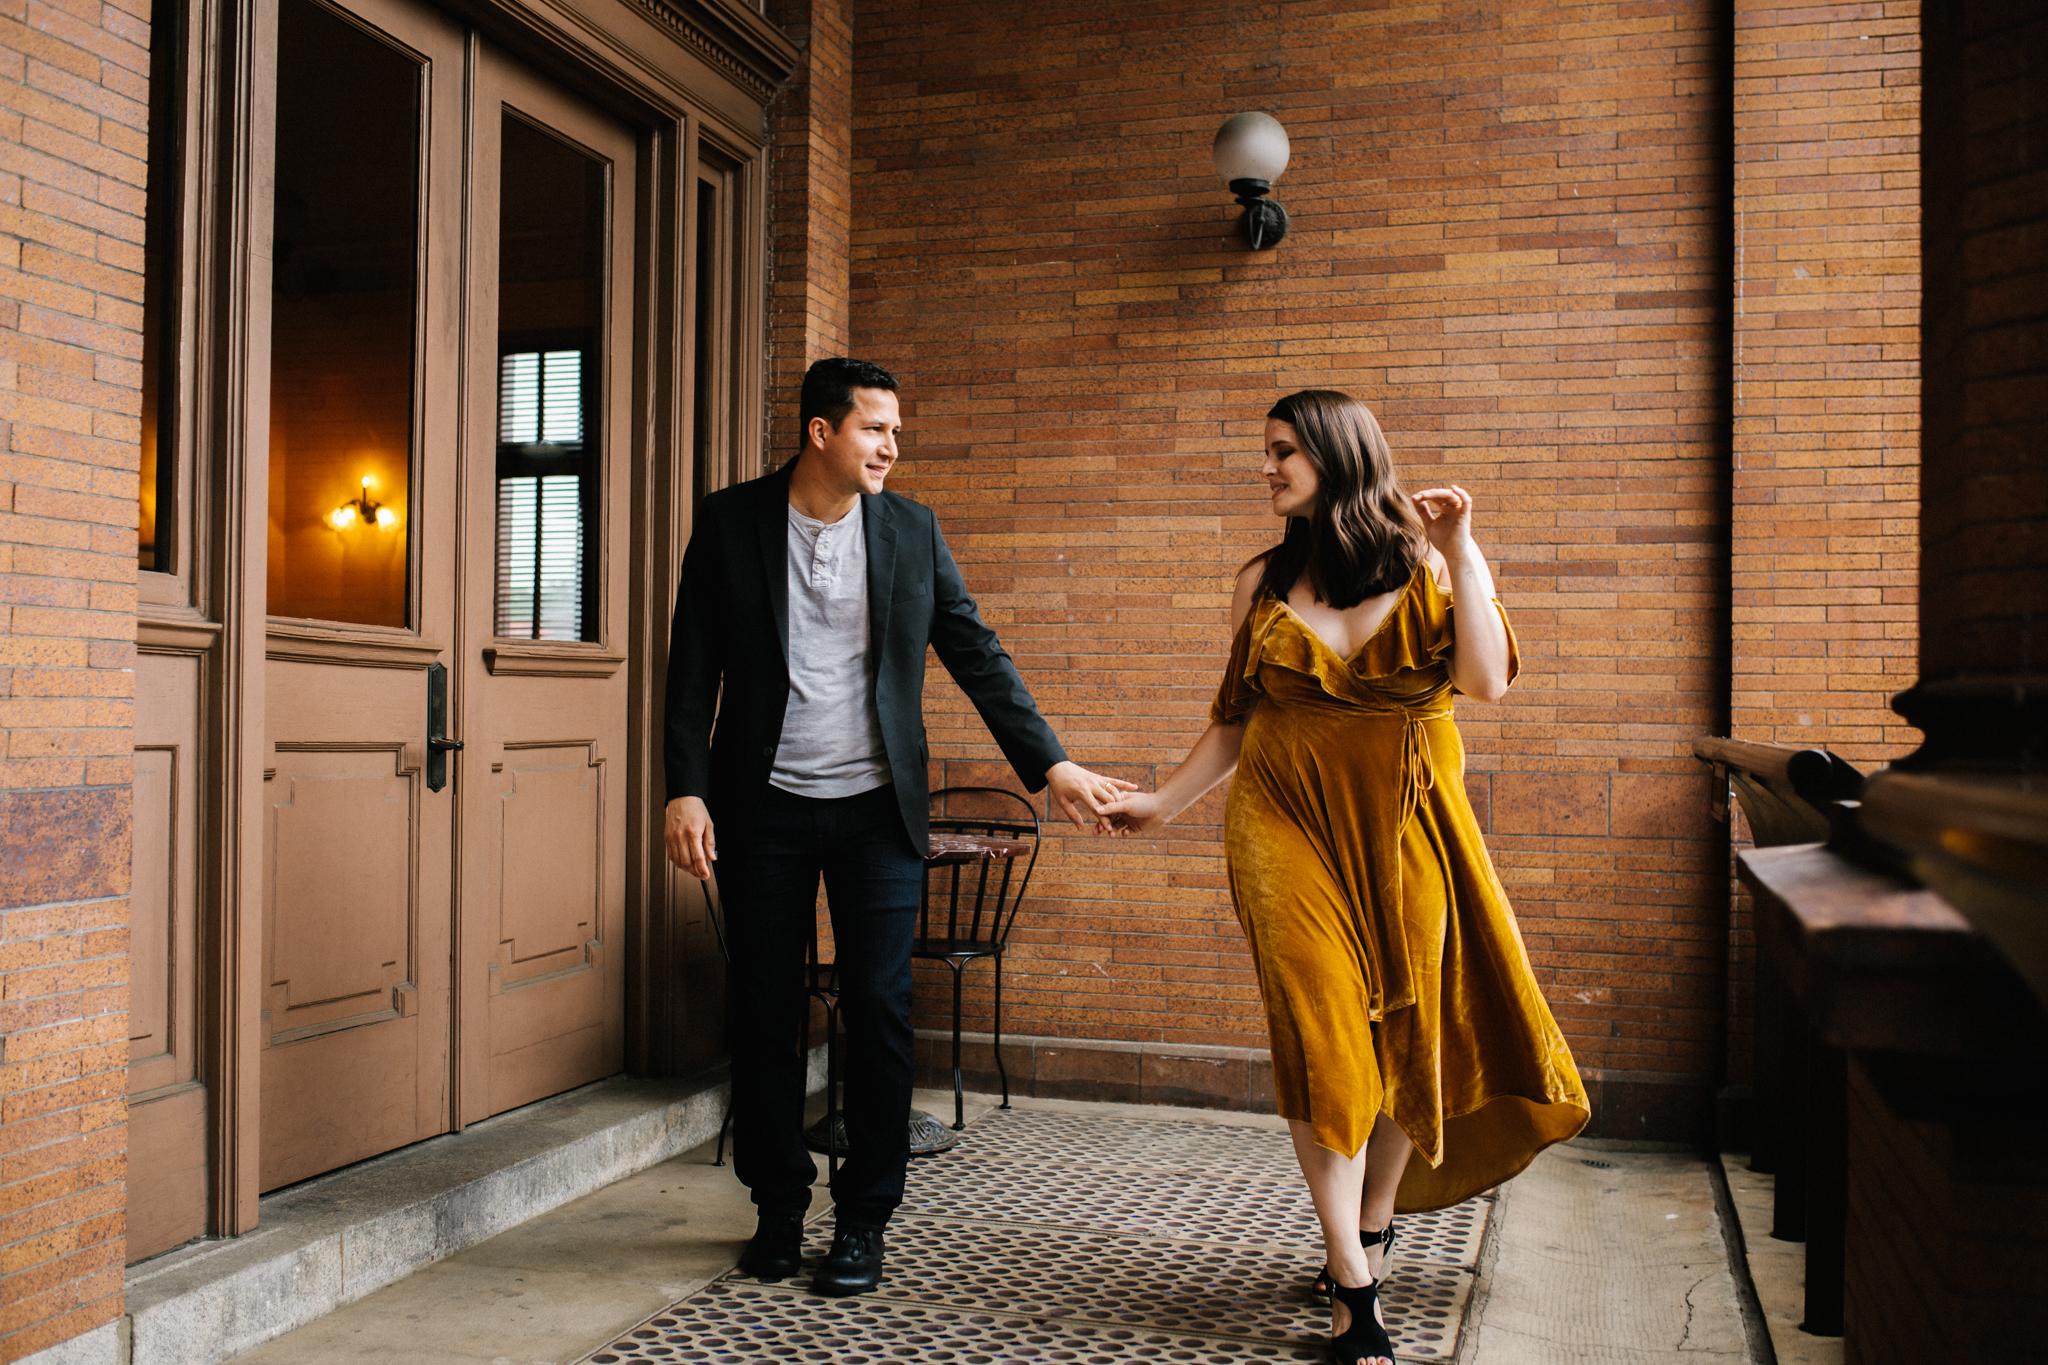 rachel_alex_richmond_engagement_session_mainstreetstation_rebeccaburtphotography-31.jpg